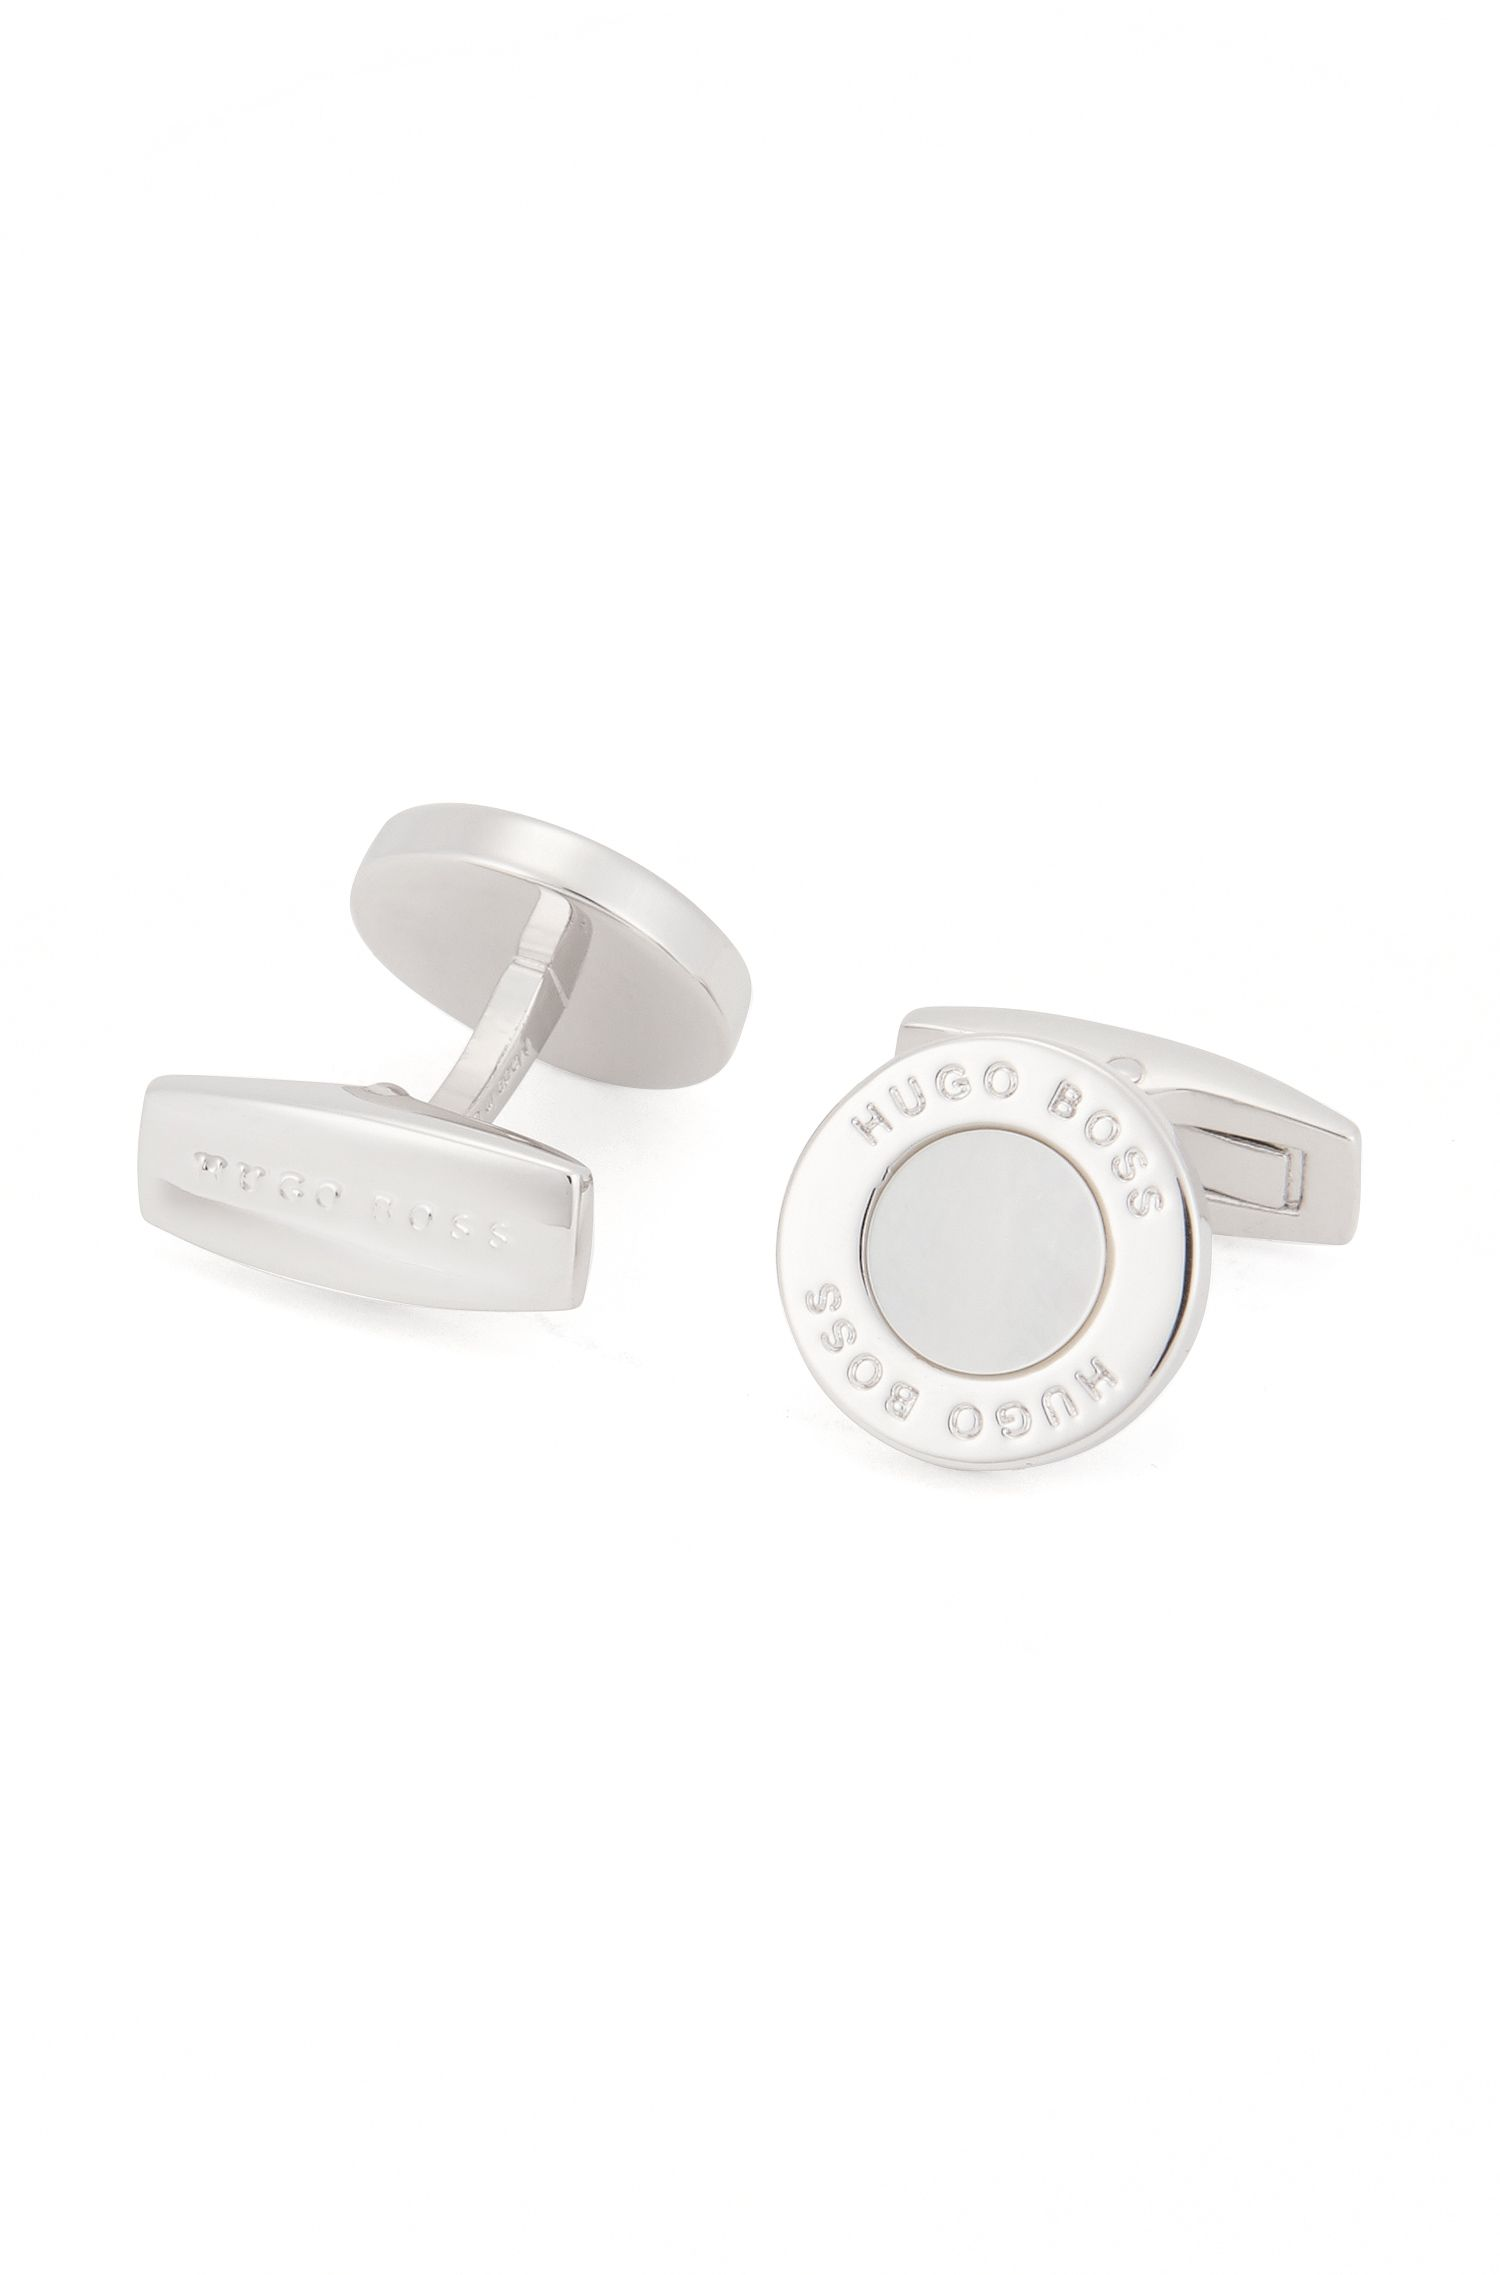 BOSS Hugo Boss Mother-Of-Pearl & Brass Cuffllinks T-Round One Size White 8nJm0